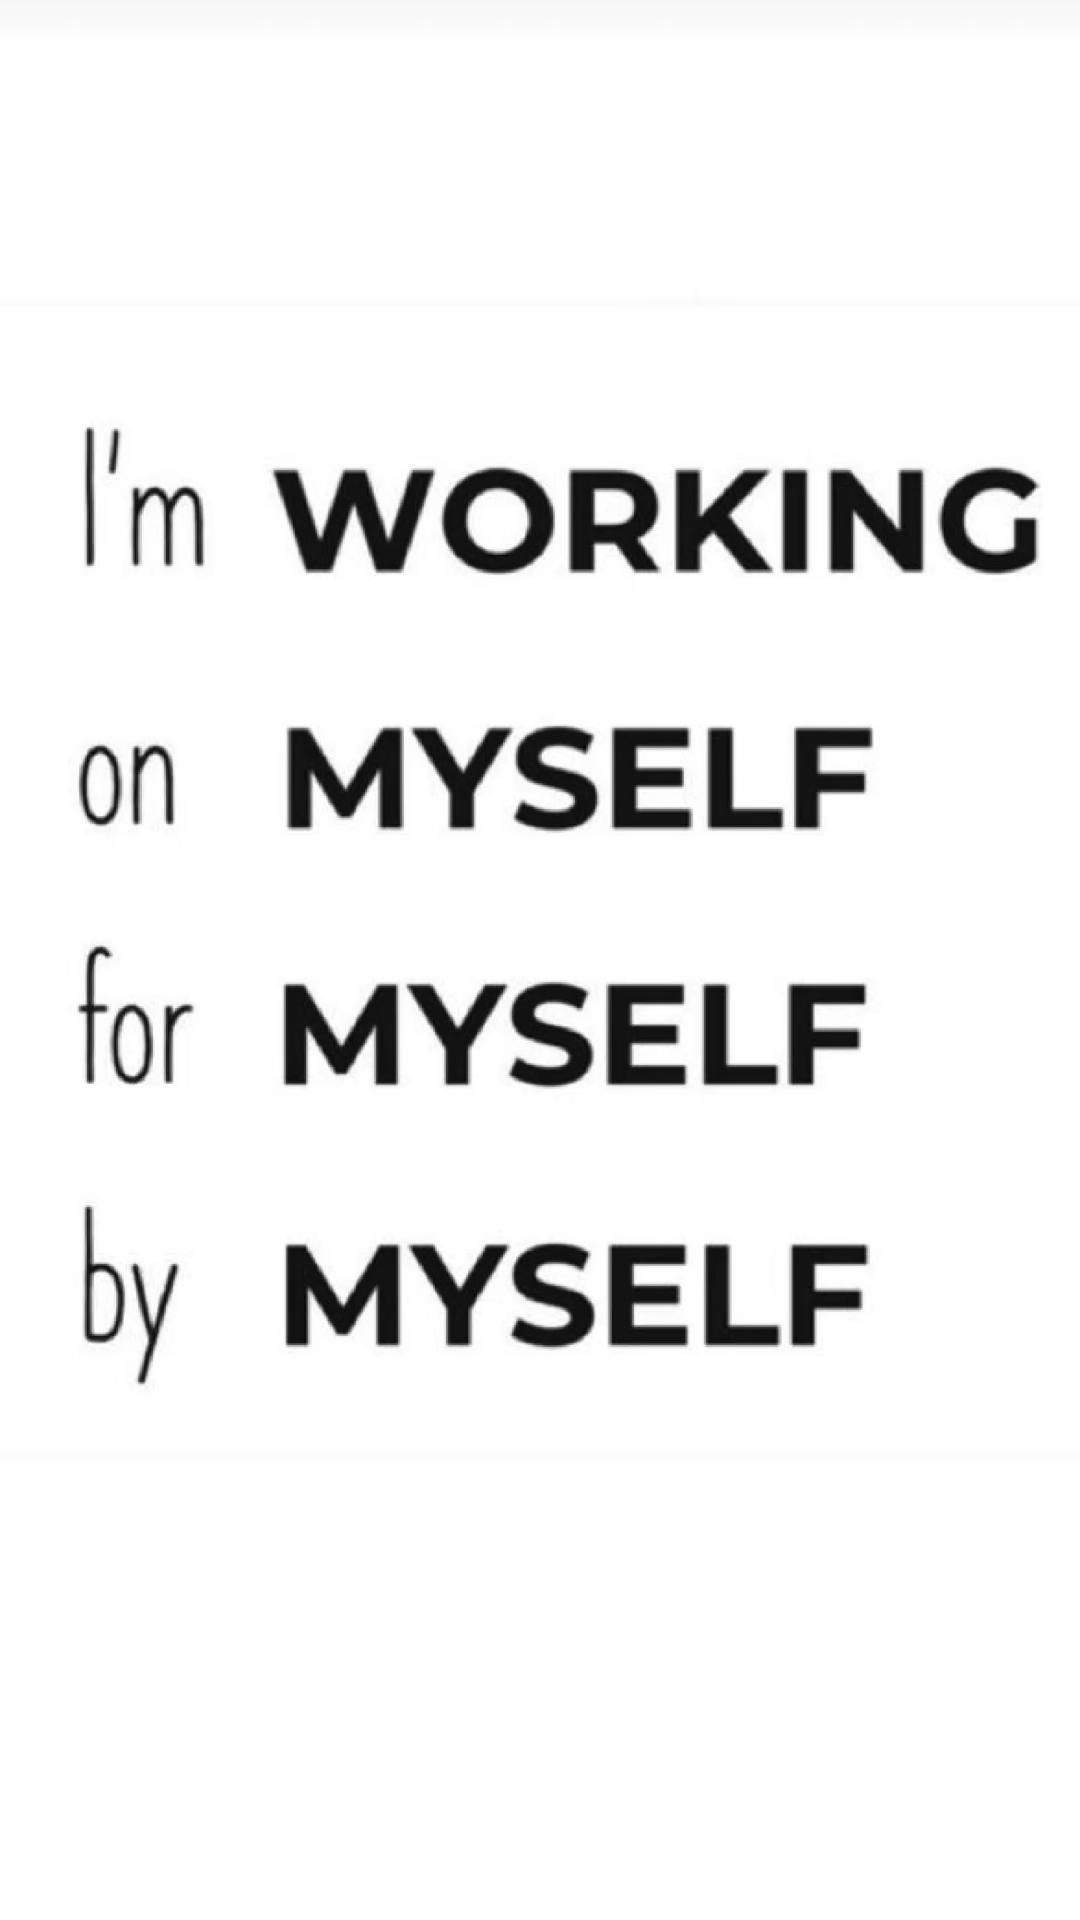 Work on yourself for yourself in silence